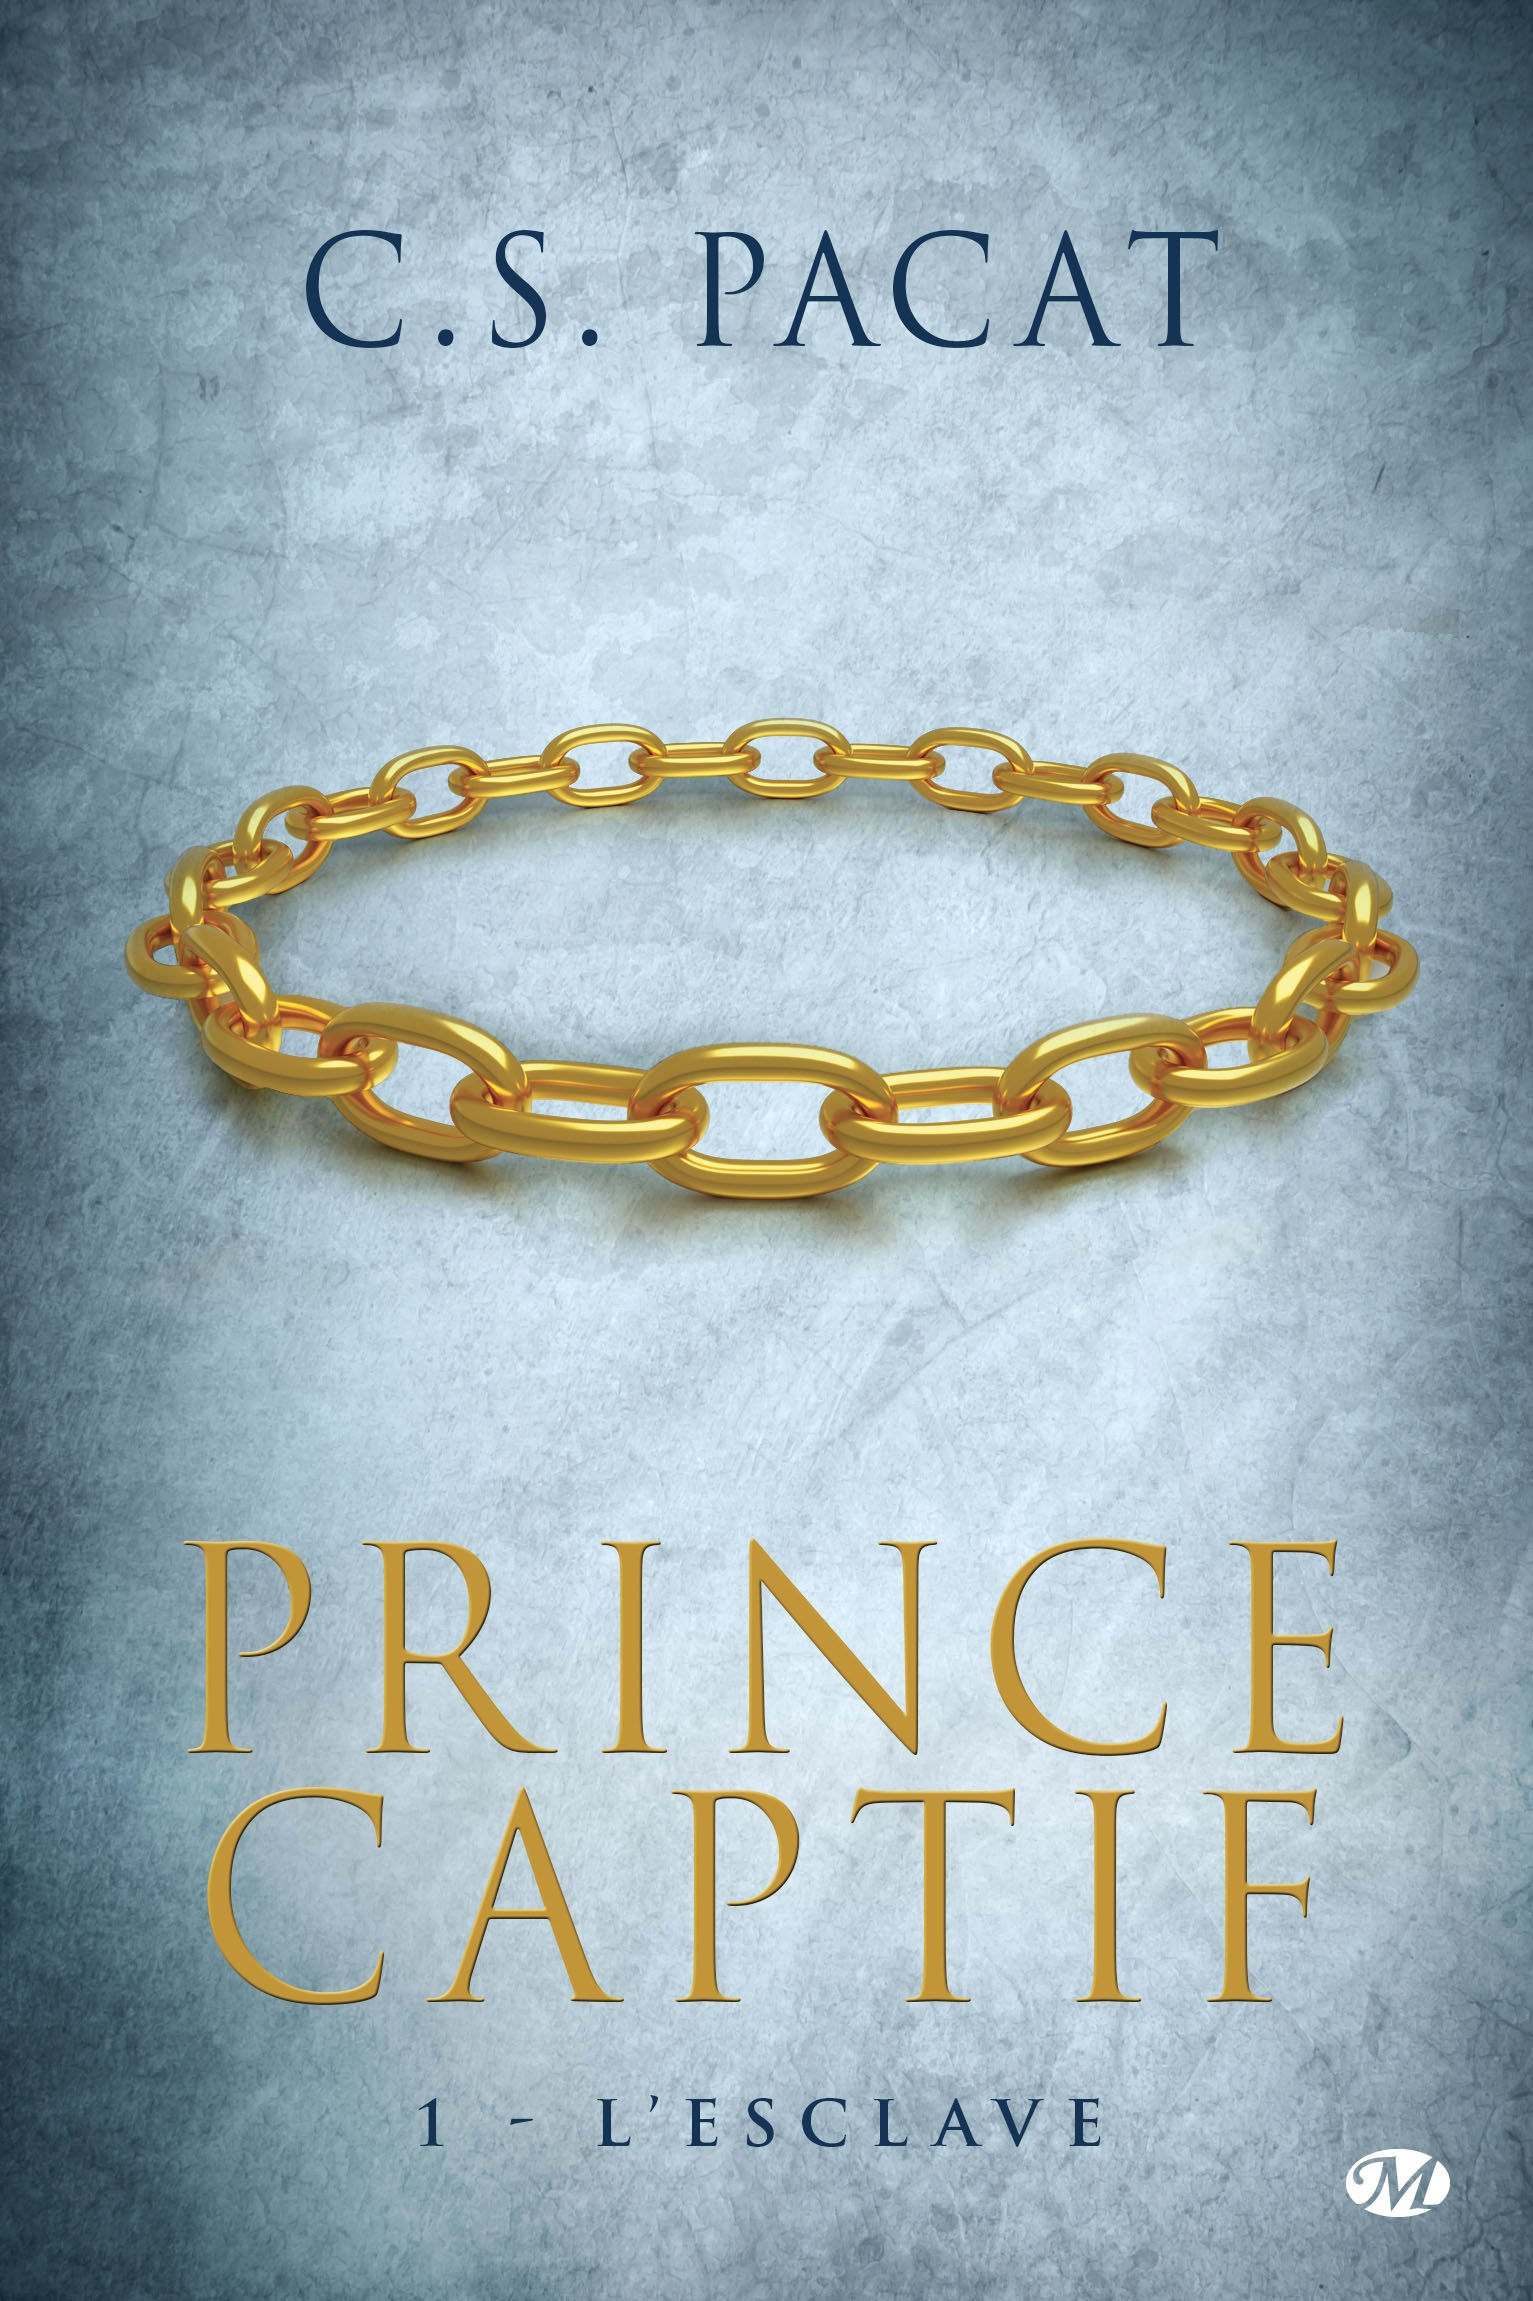 http://queenofreading1605.blogspot.be/2015/05/prince-captif-tome-1-lesclave-de-cs.html